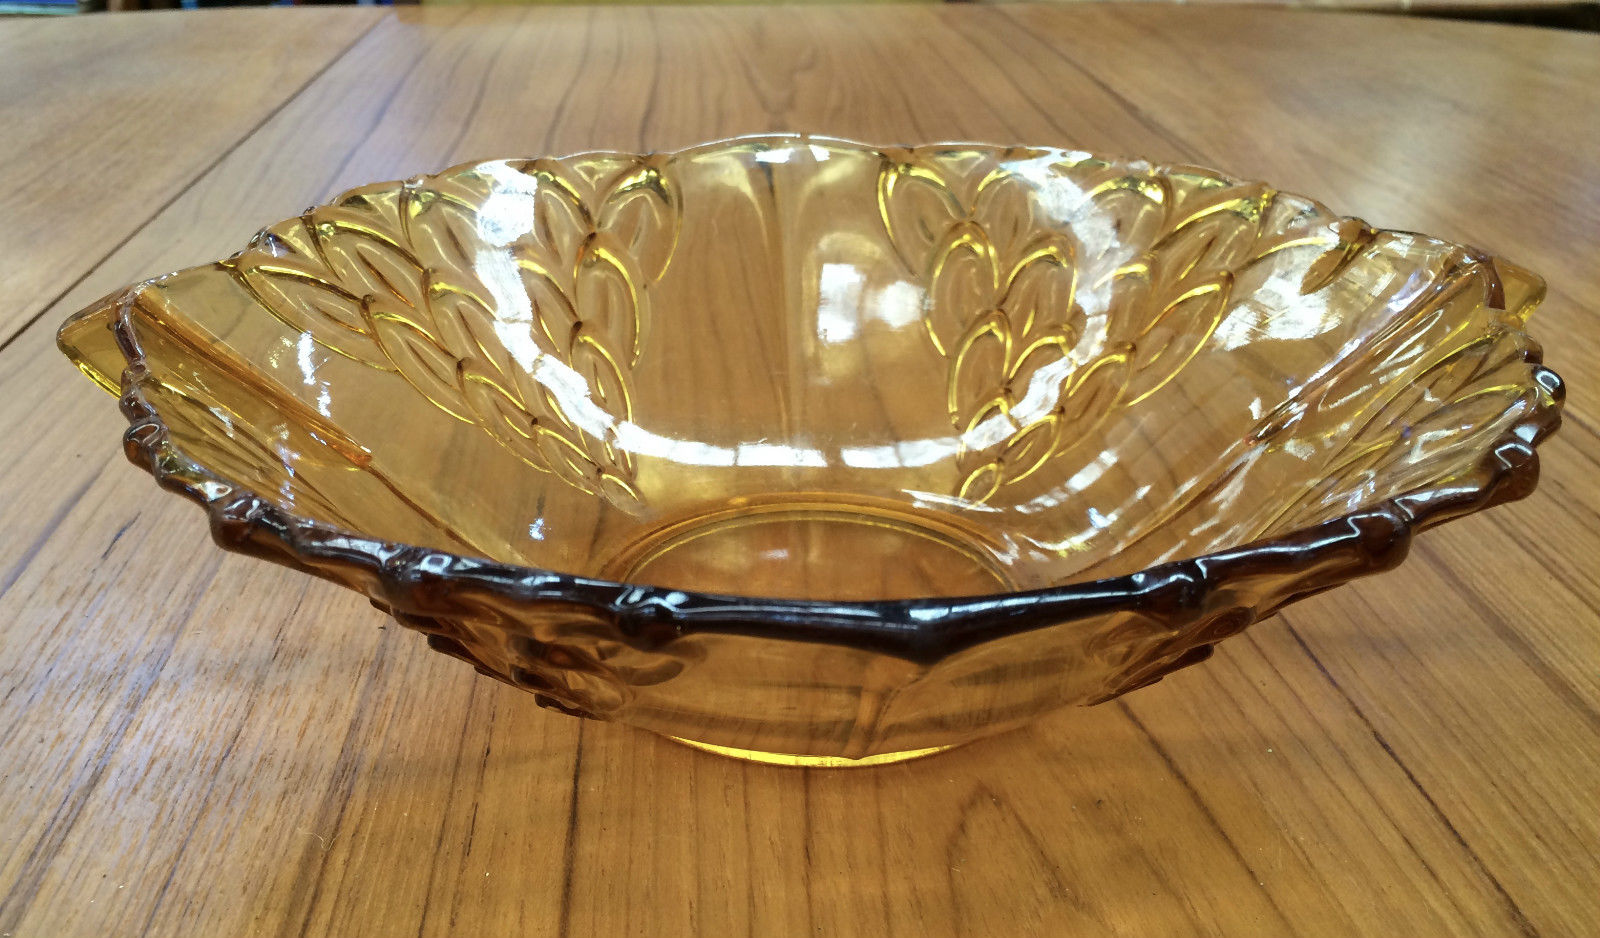 Vintage Amber Depression Glass Fruit Bowl With Handles | Melbourne | Halsey Road Recyclers